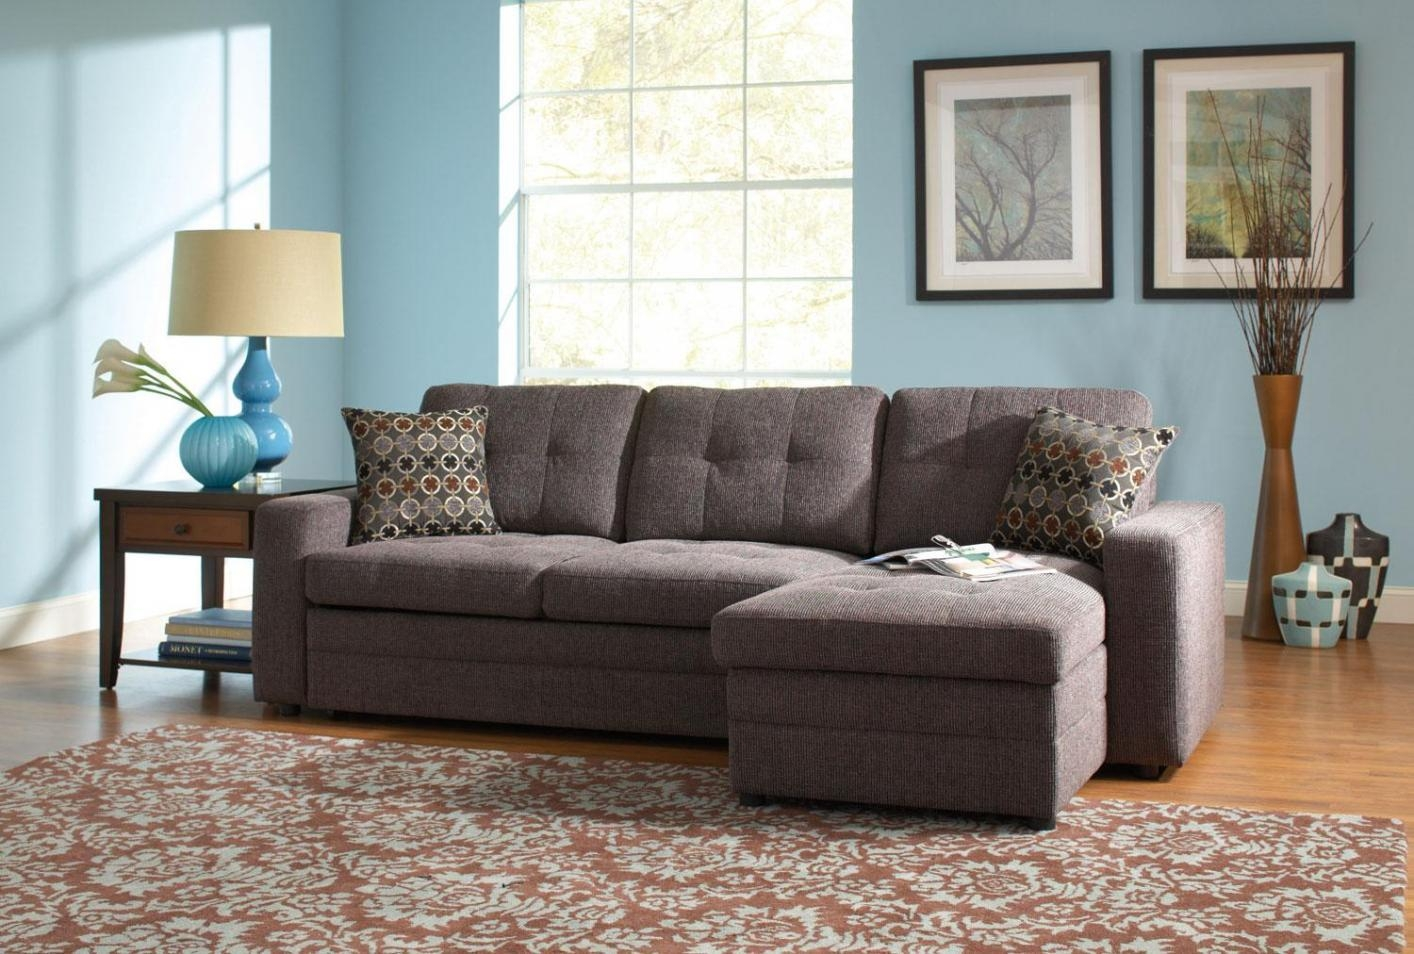 Gus Black Fabric Sectional Sleeper Sofa – Steal A Sofa Furniture Throughout Los Angeles Sleeper Sofas (View 5 of 20)